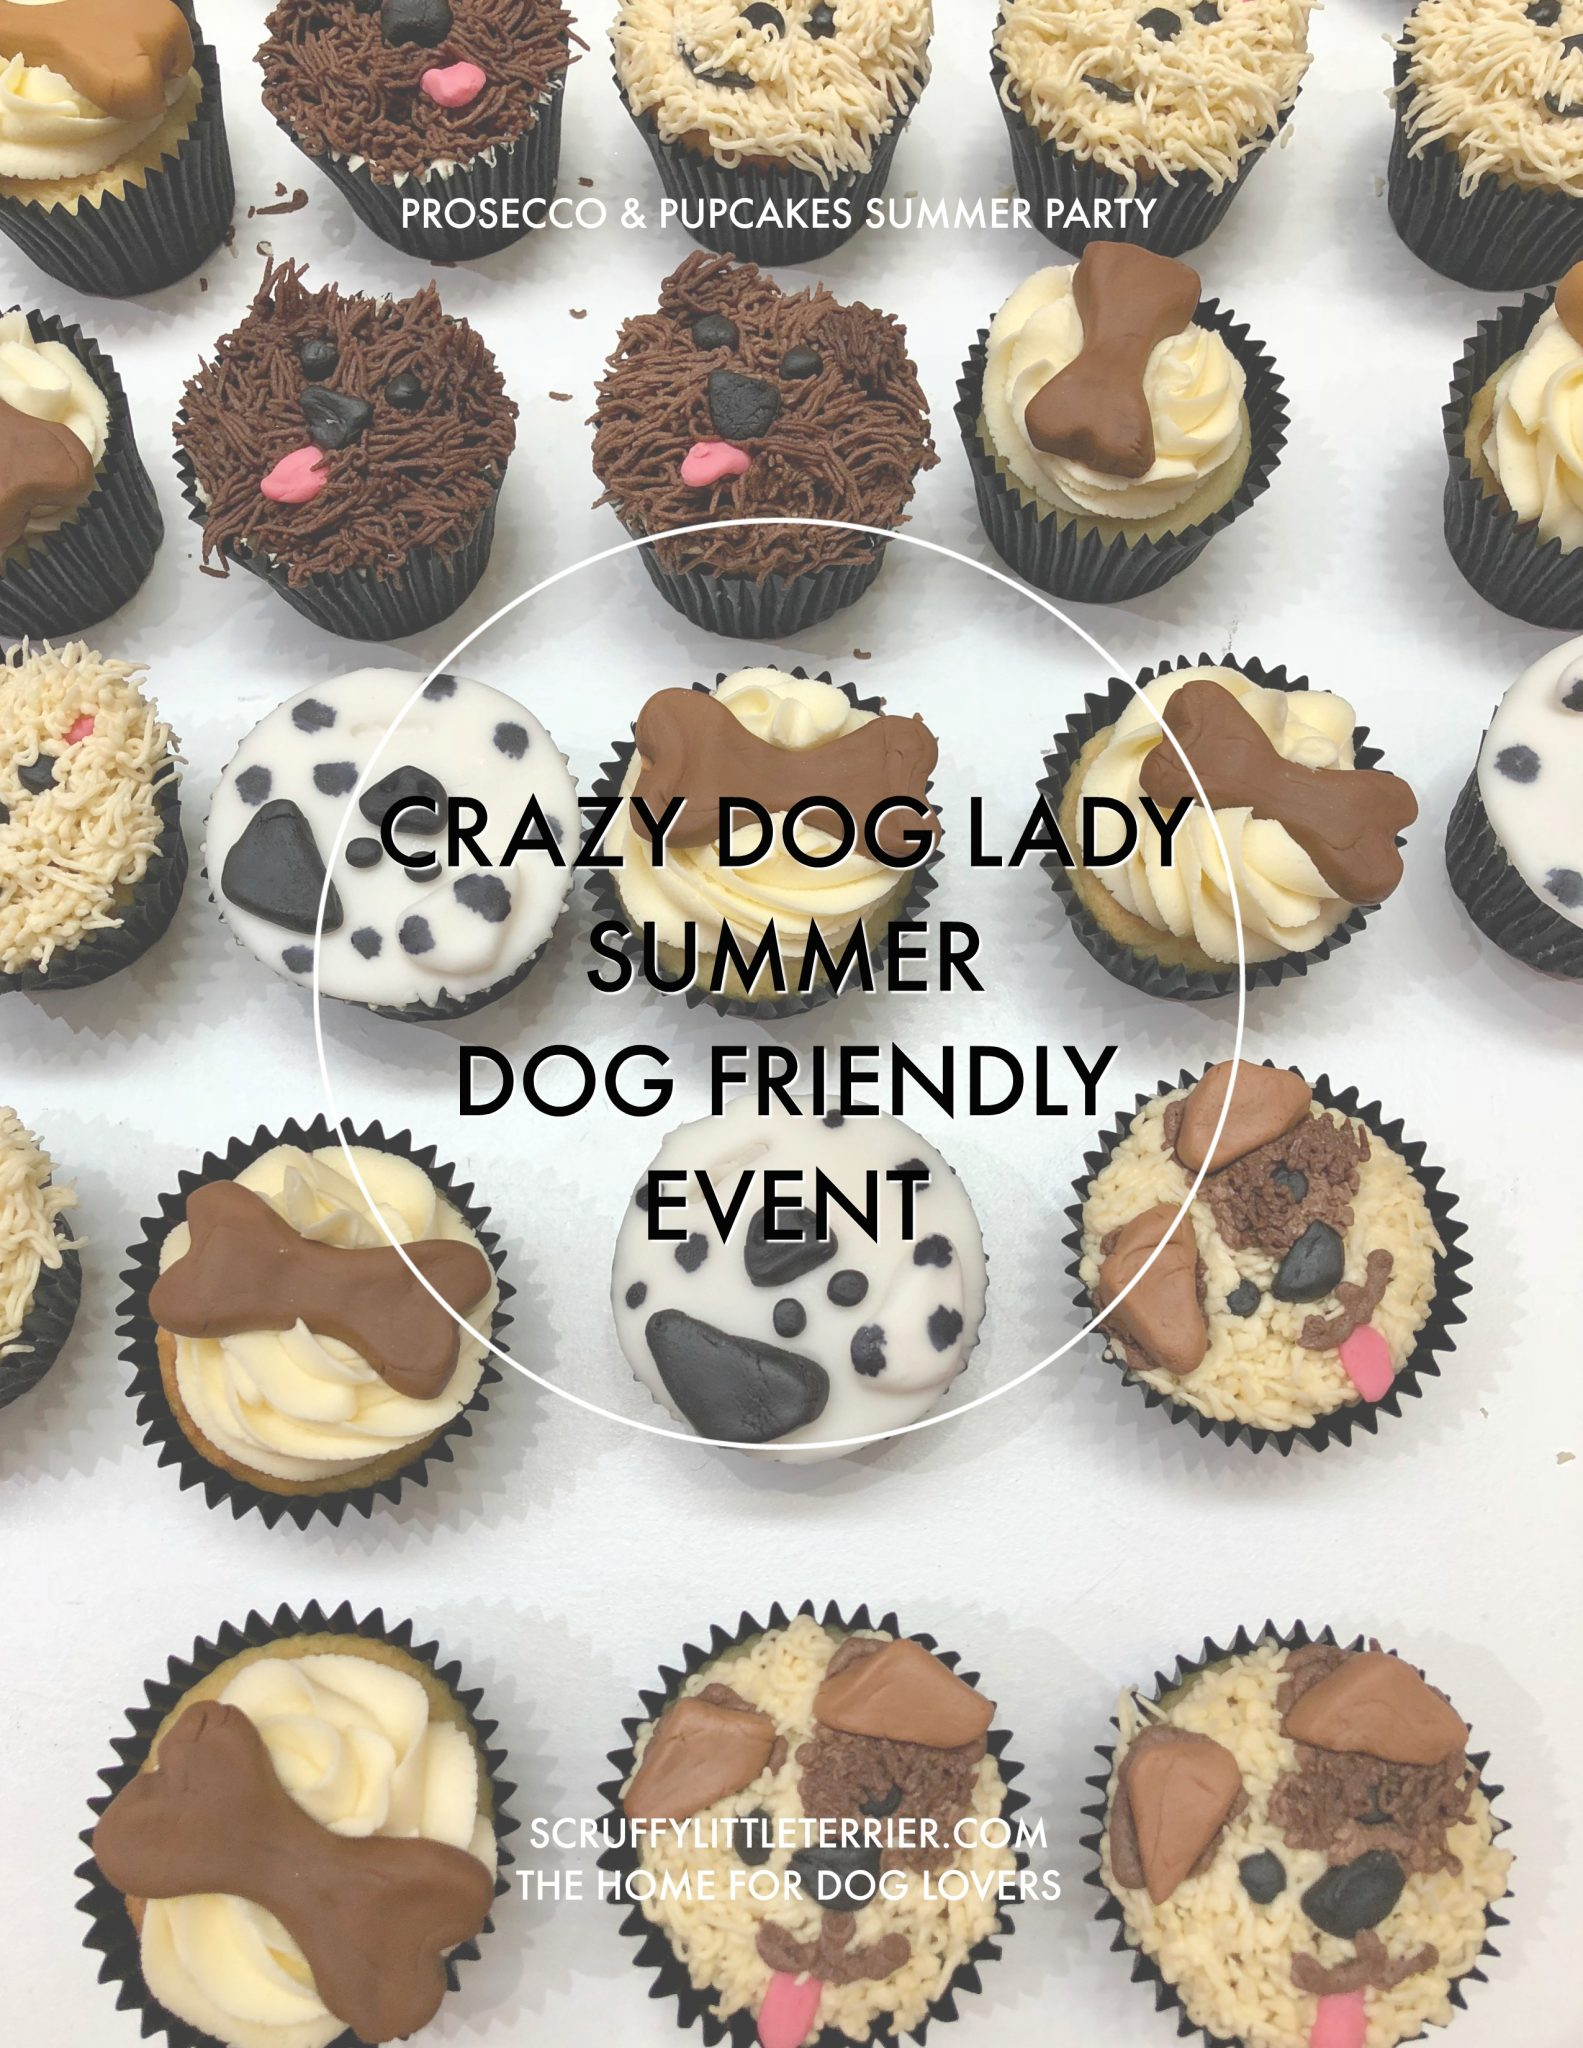 Crazy Dog Lady {Dog Friendly Events} #CrazyDogLady #DogFriendly #Events #London #Pupcakes #Puppachinos www.scruffylittleterrier.com